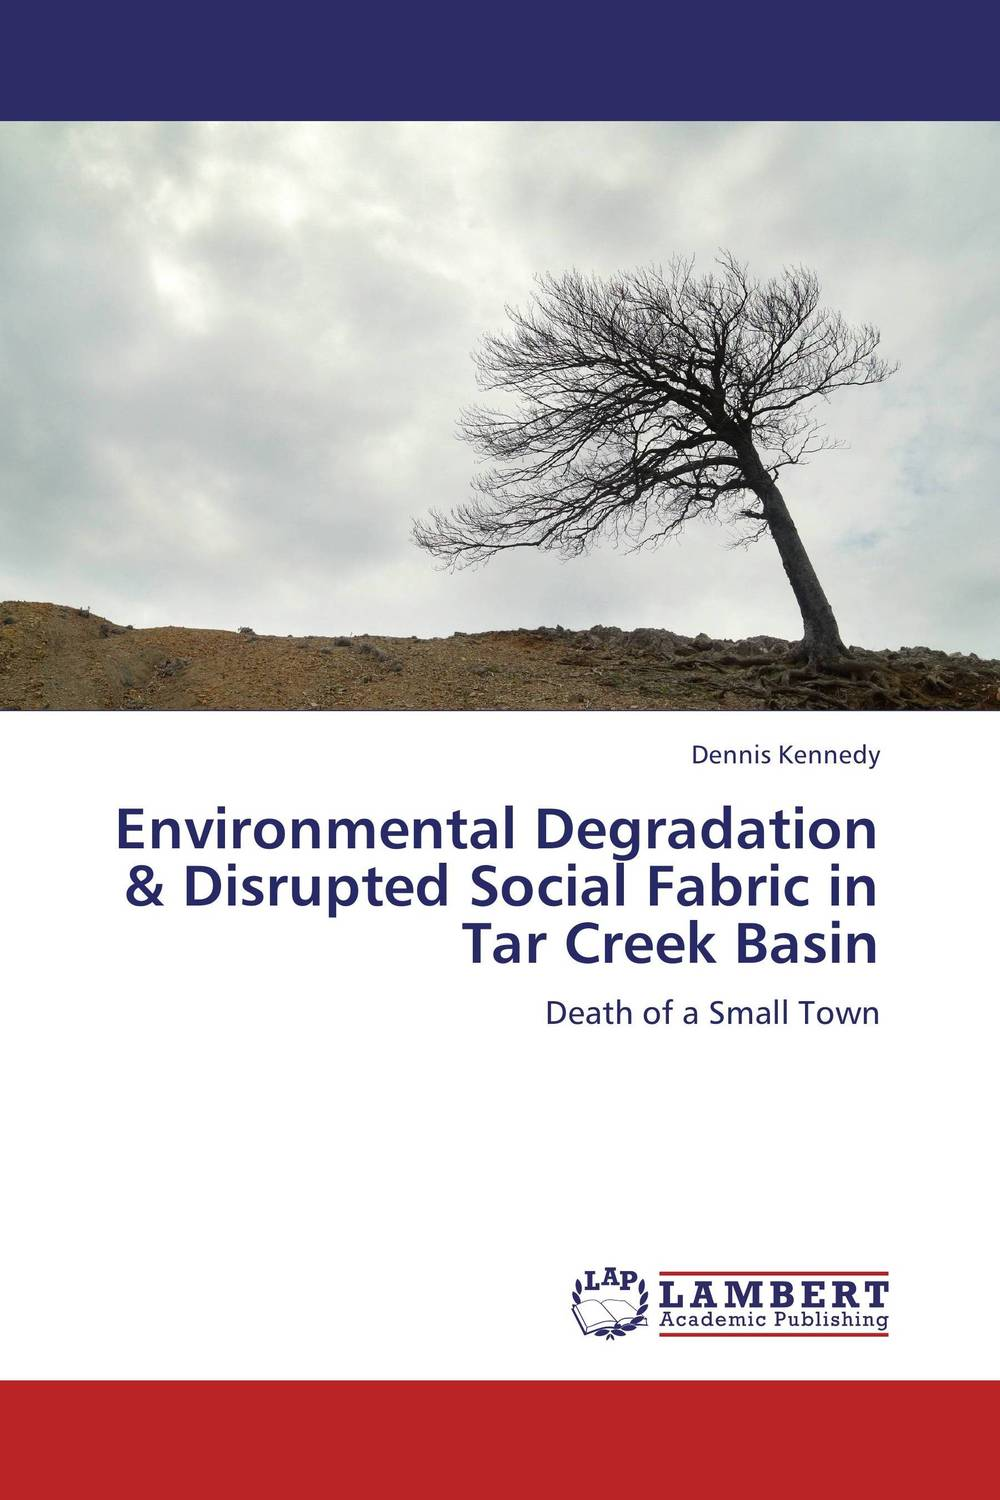 Environmental Degradation & Disrupted Social Fabric in Tar Creek Basin the tar aiym krang